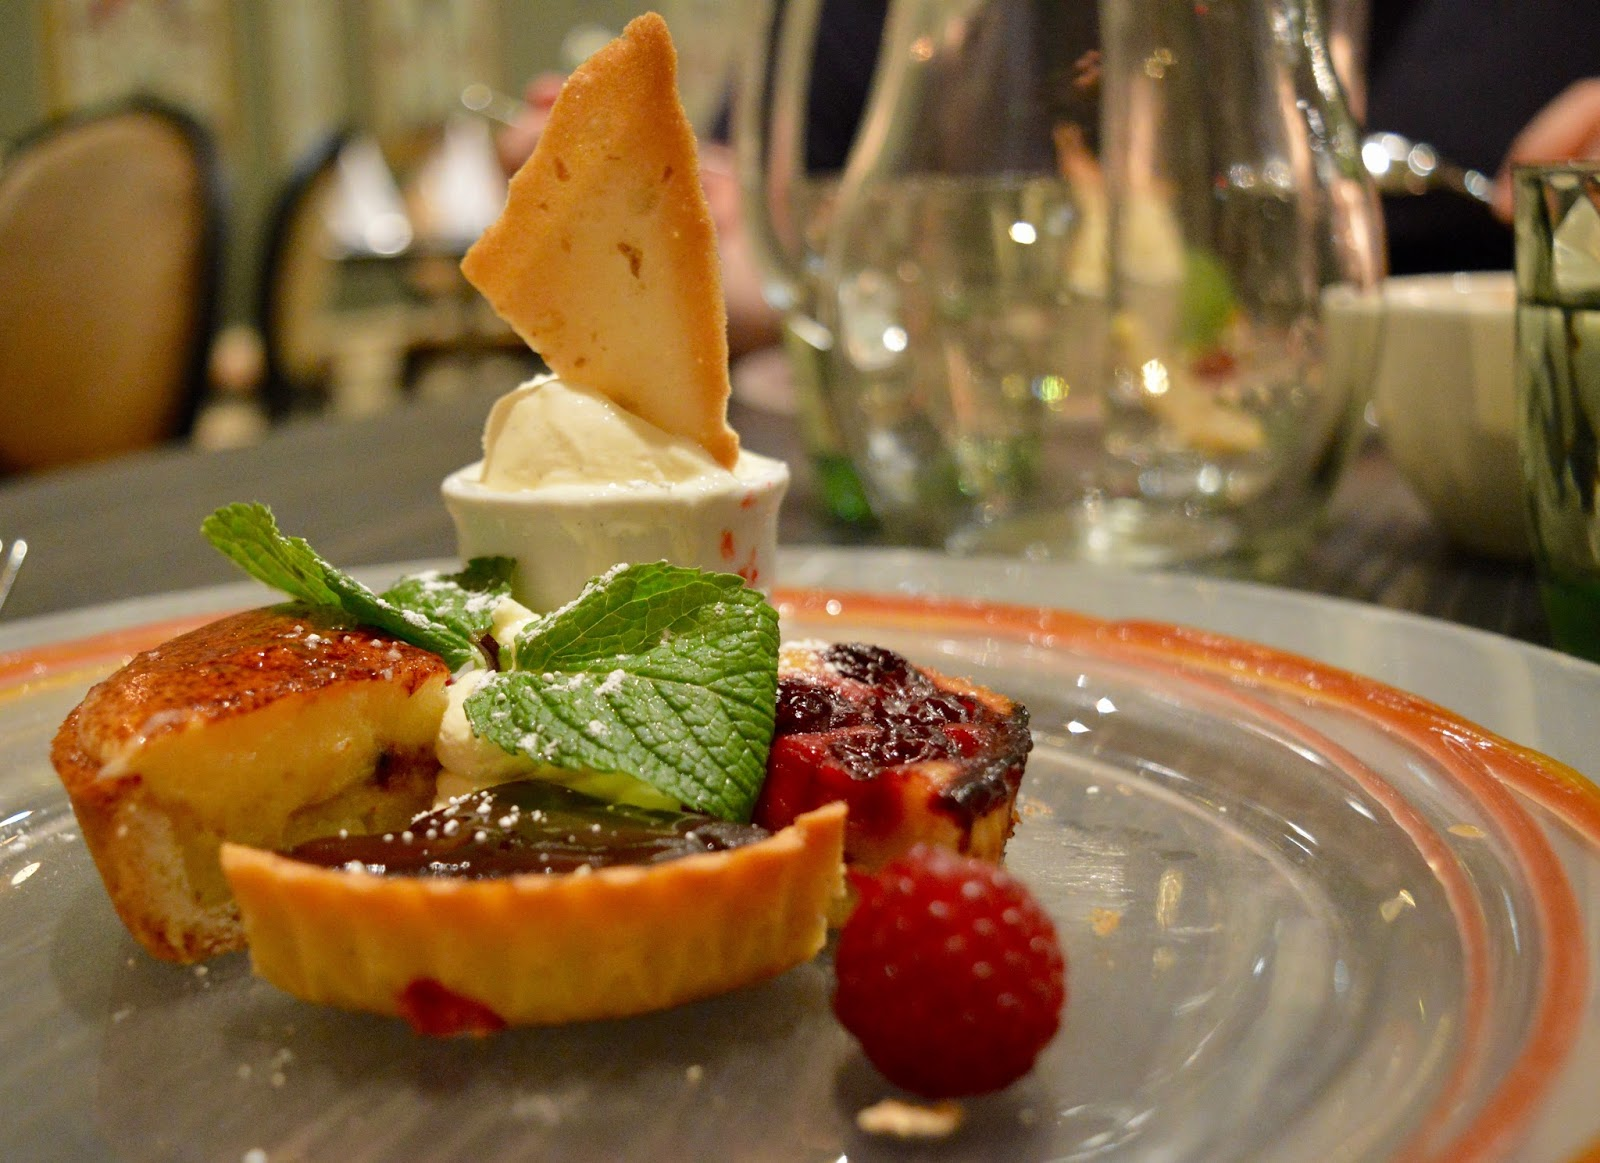 The Brasserie at the Grand Hotel, Tynemouth | New Tasting Menu review  - dessert platter